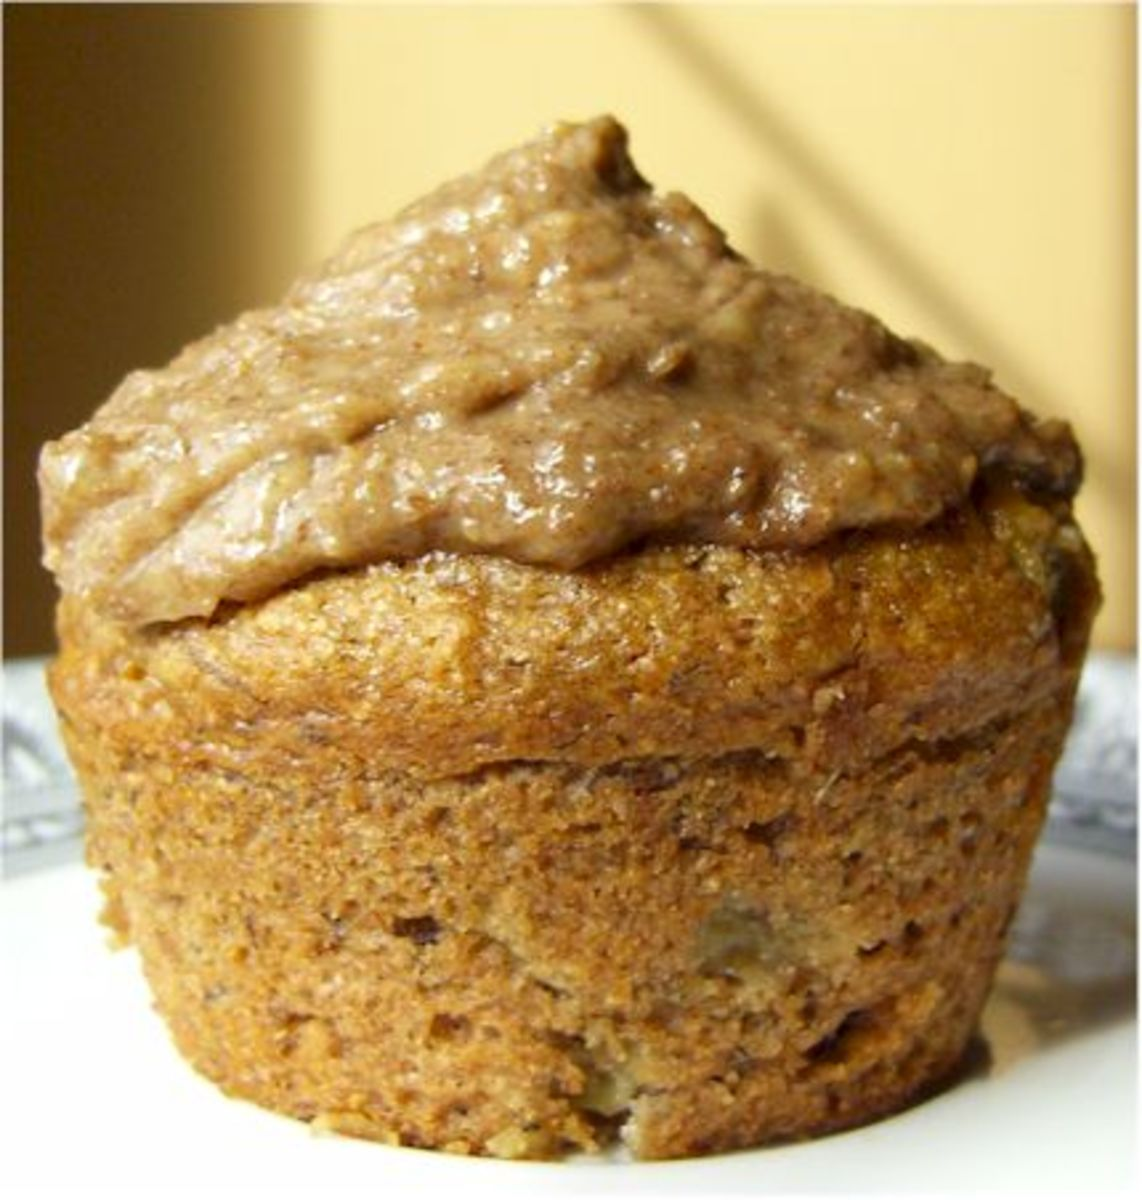 Whole-Wheat Cinnamon Raisin Banana Muffins